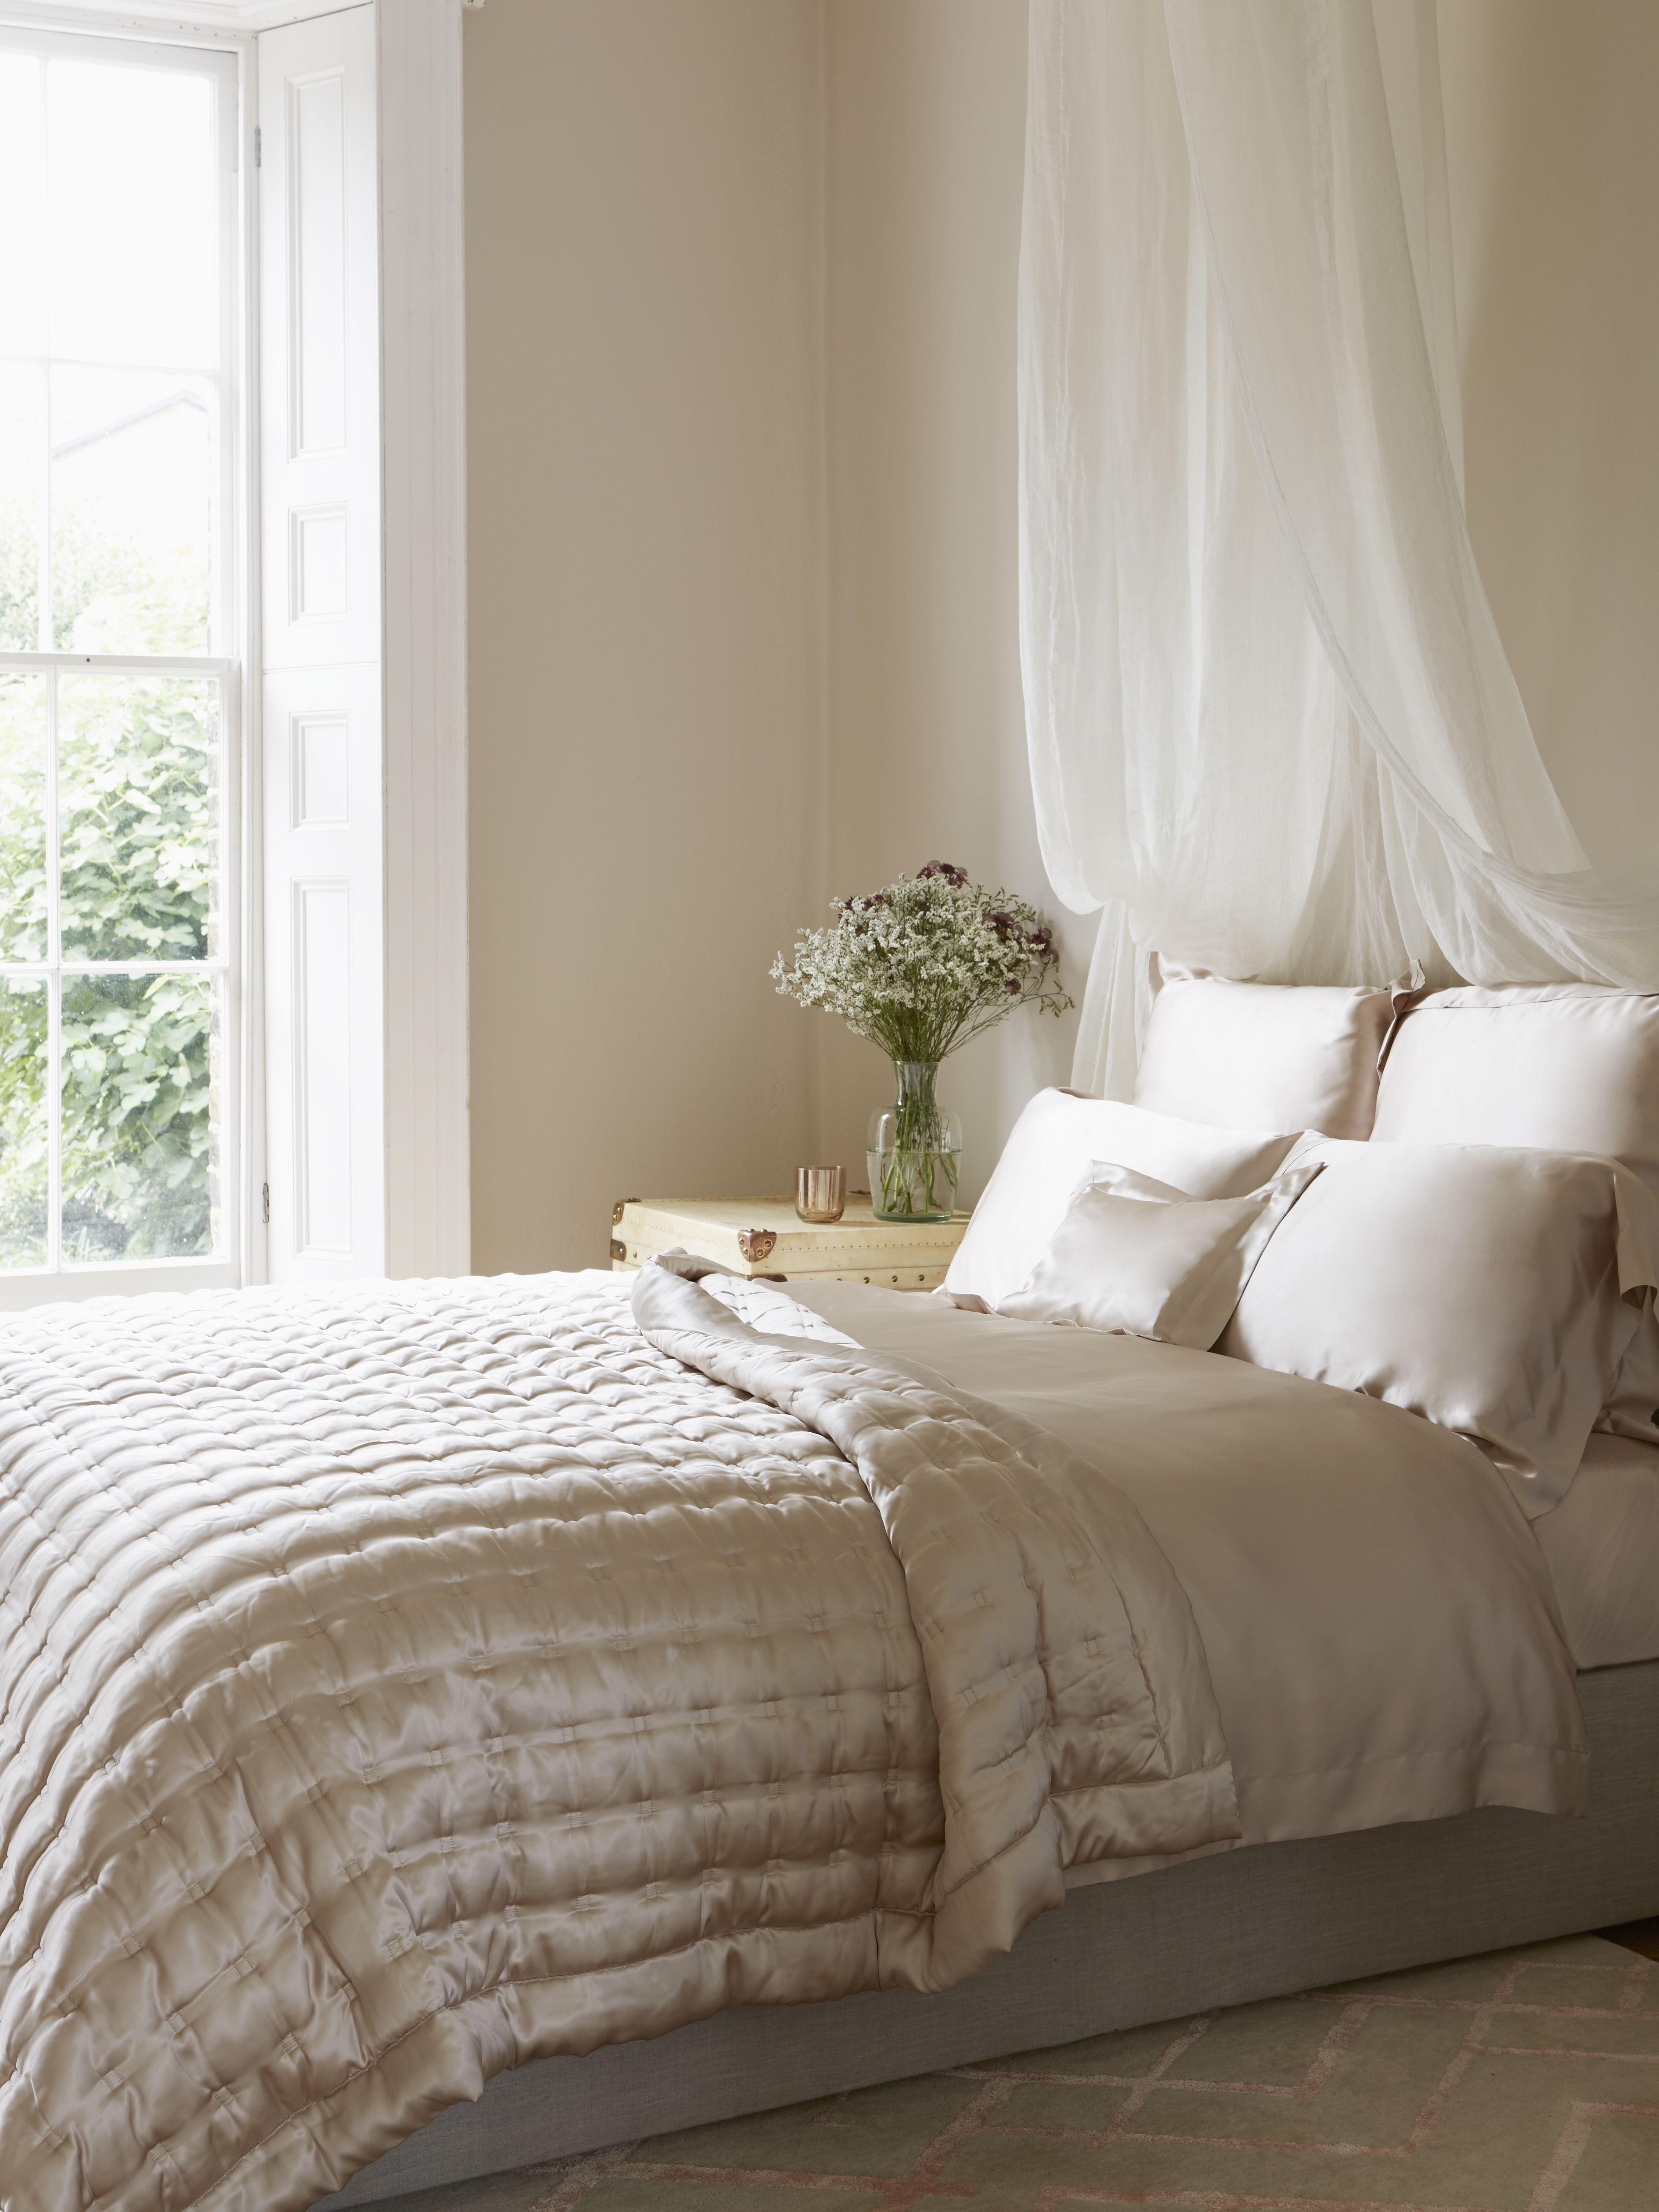 throw aus bath free today comforter shipping mulberry silk blanket bedding product overstock vio